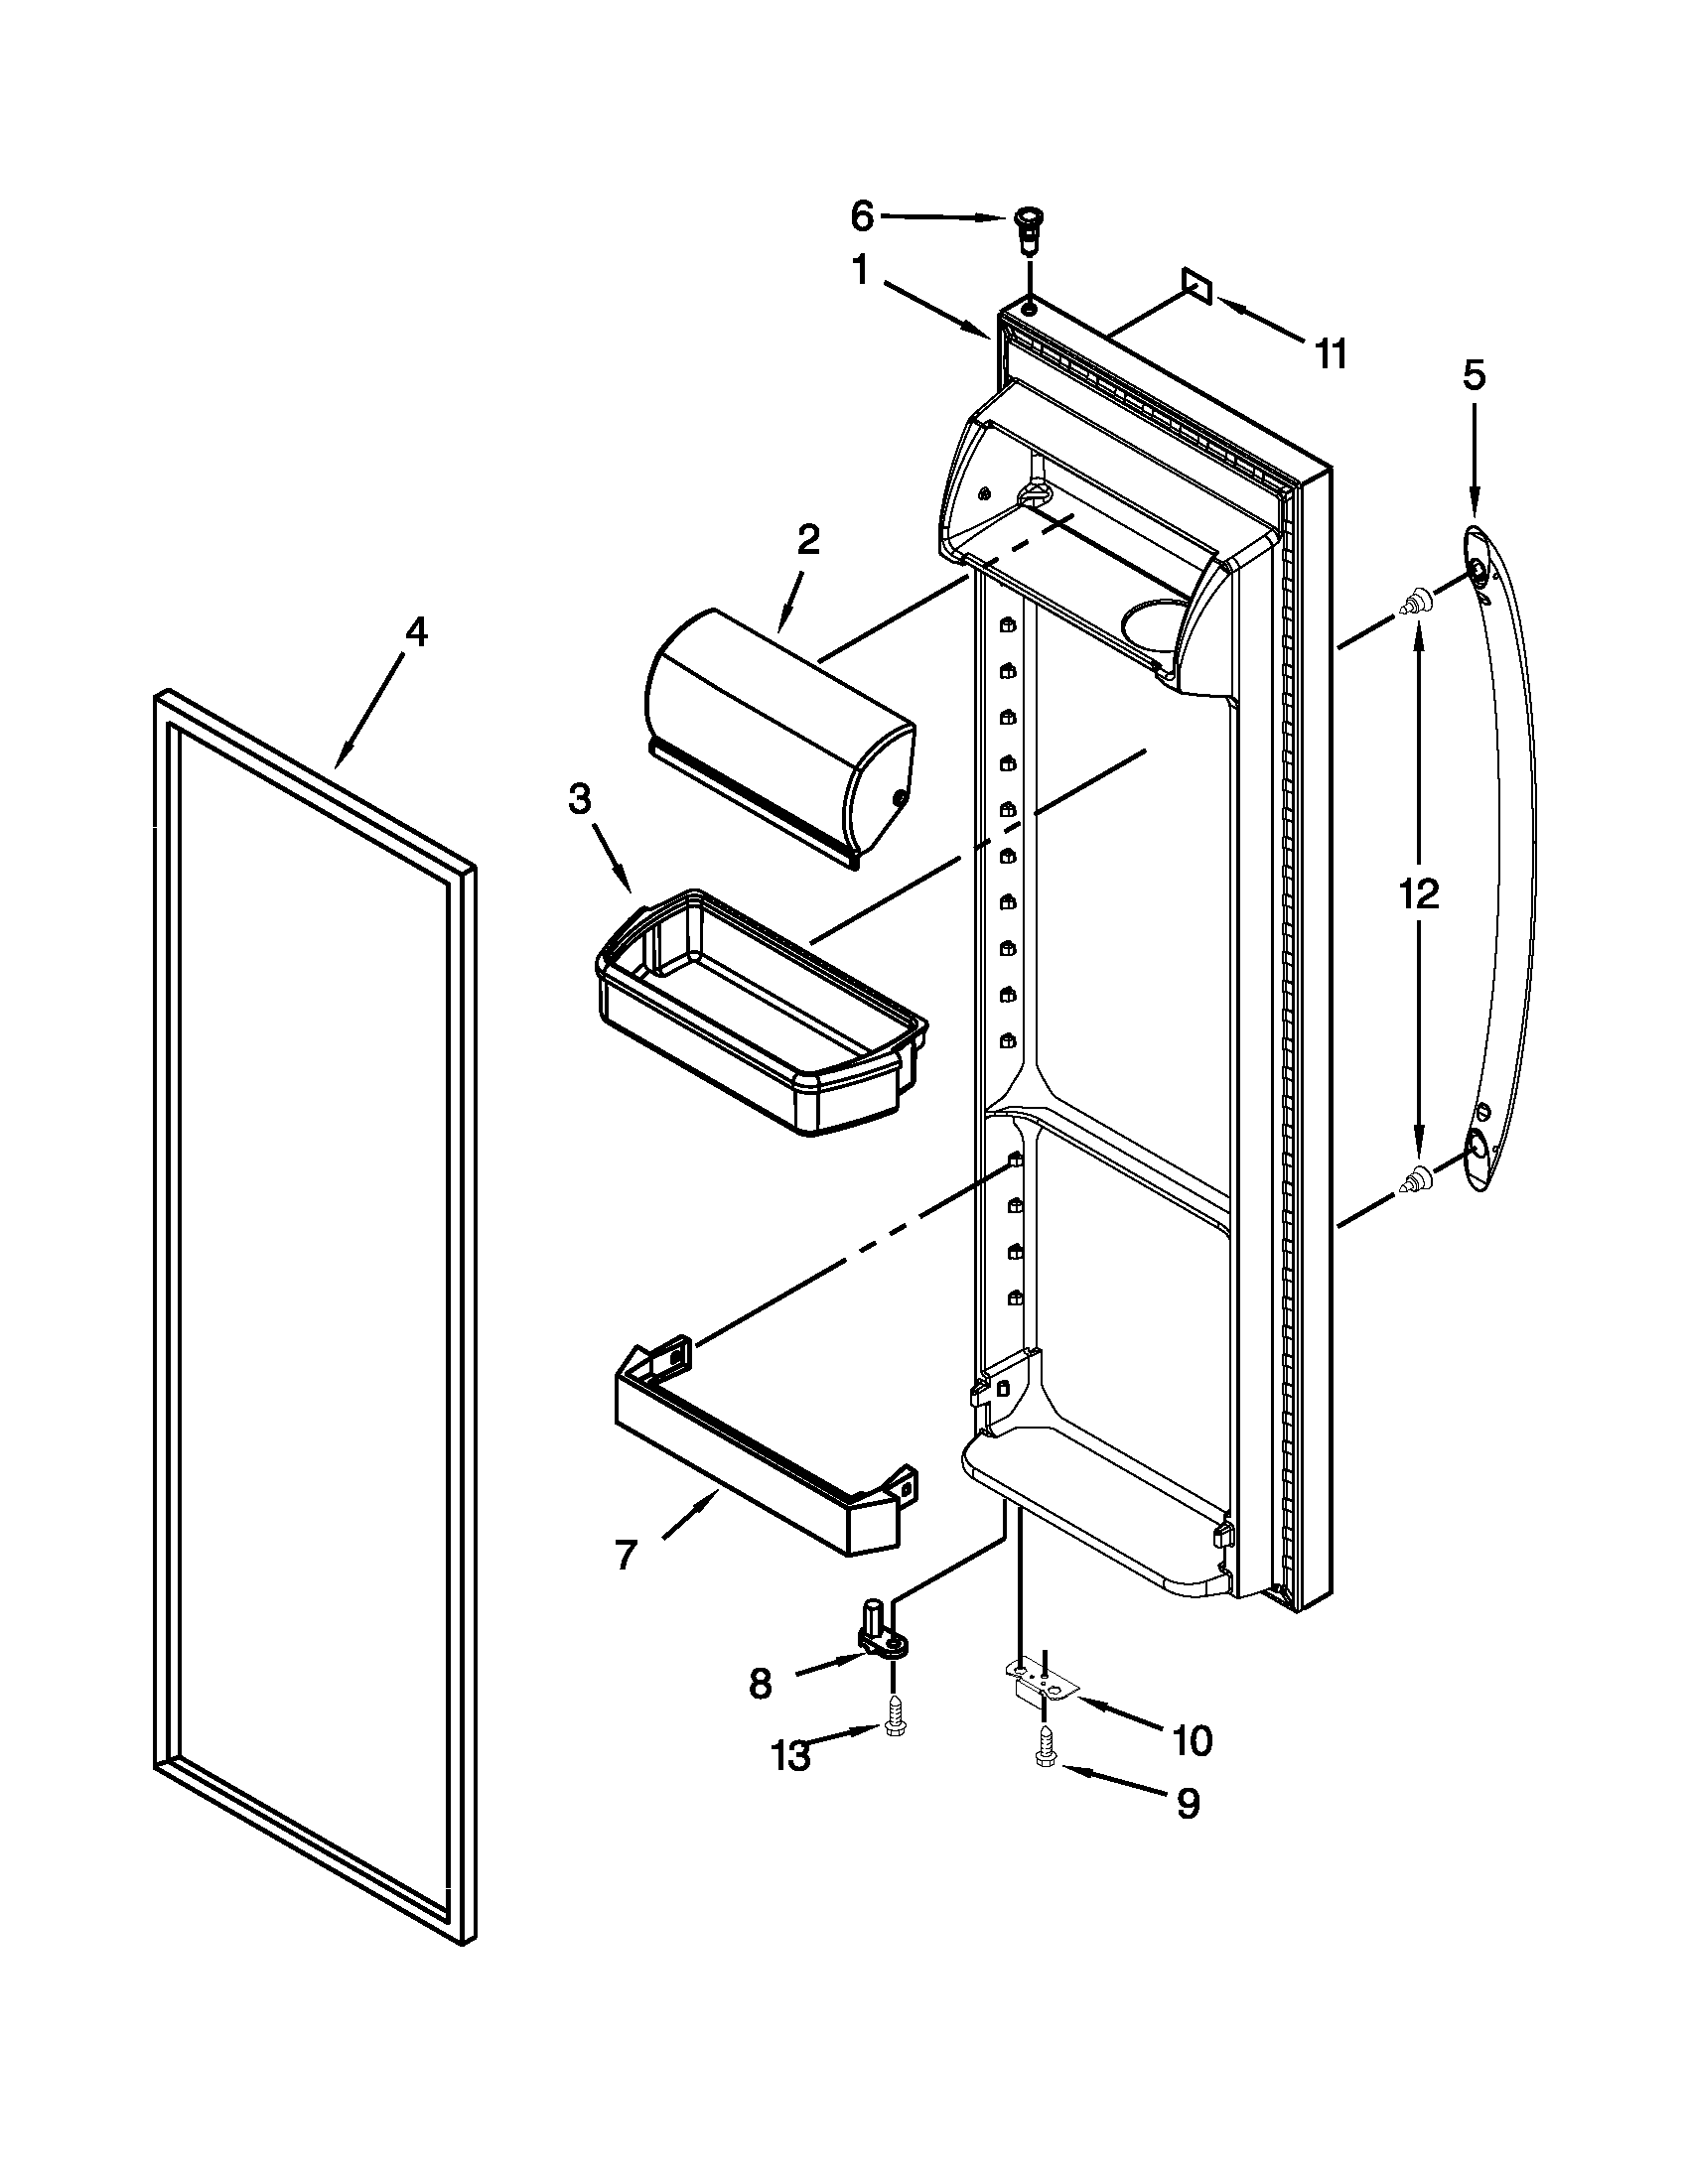 kenmore side by side refrigerator manual